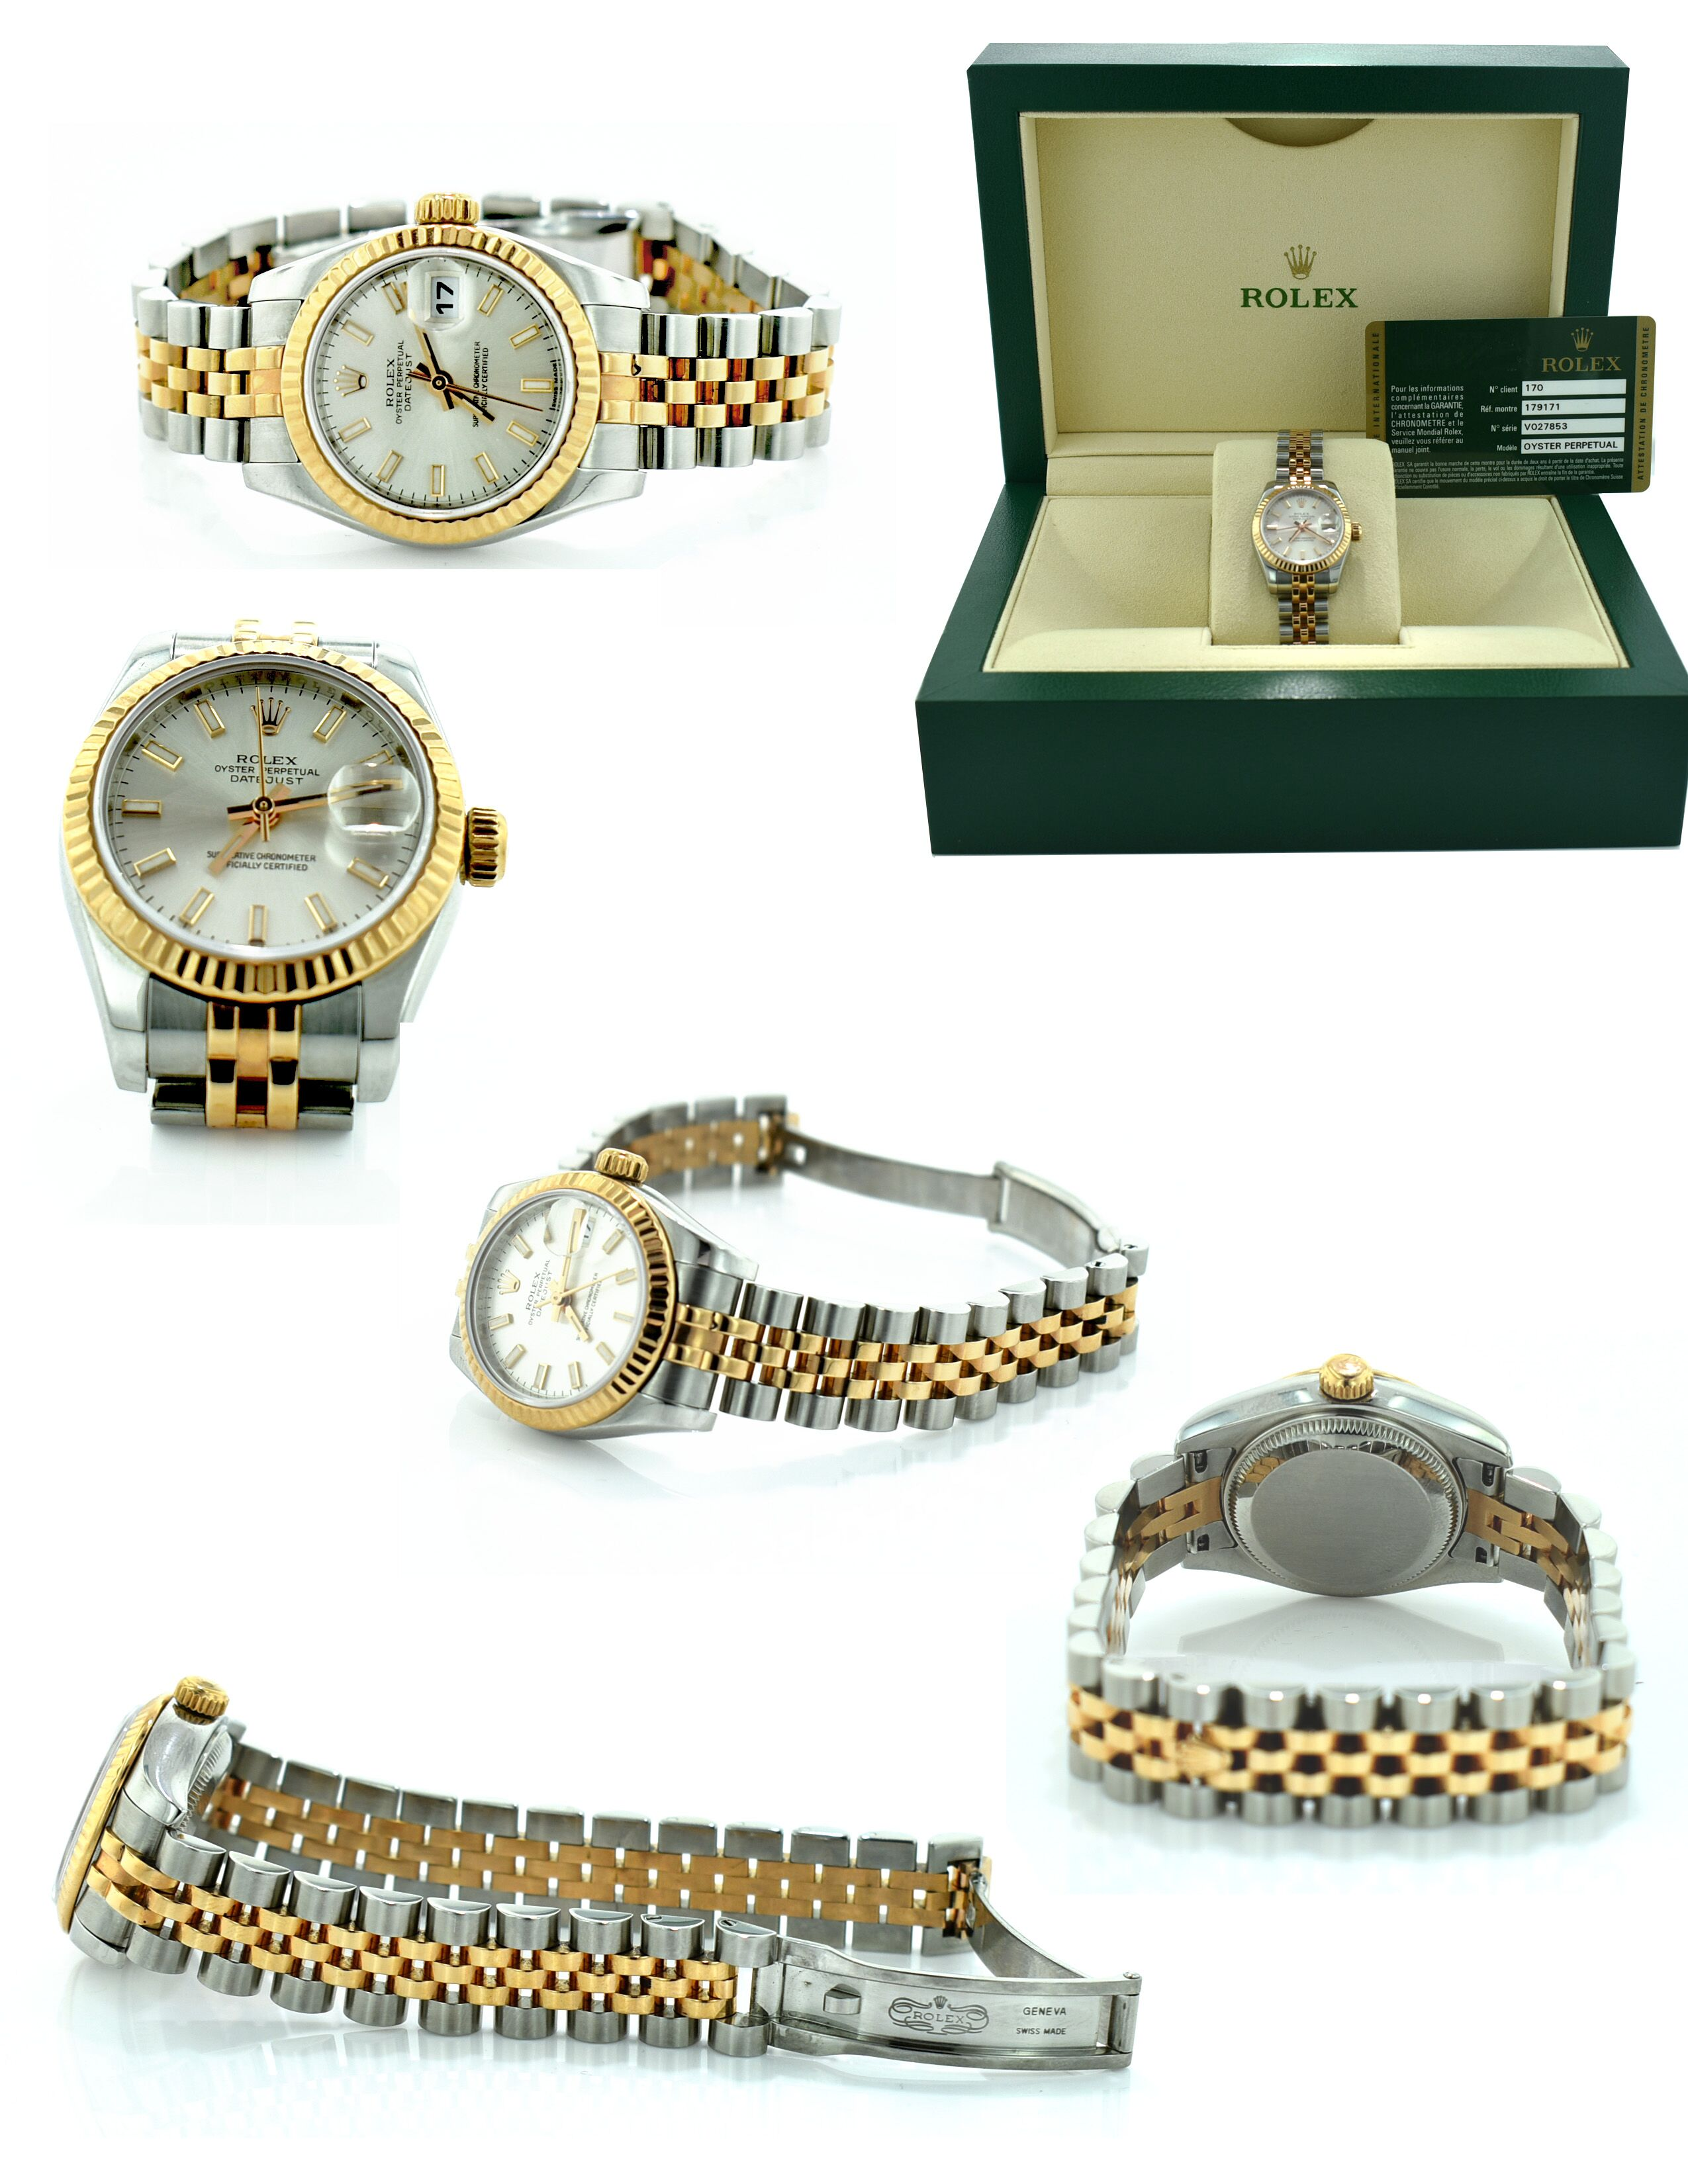 watch buyers atlanta full rolex set box barrons fine jewlery